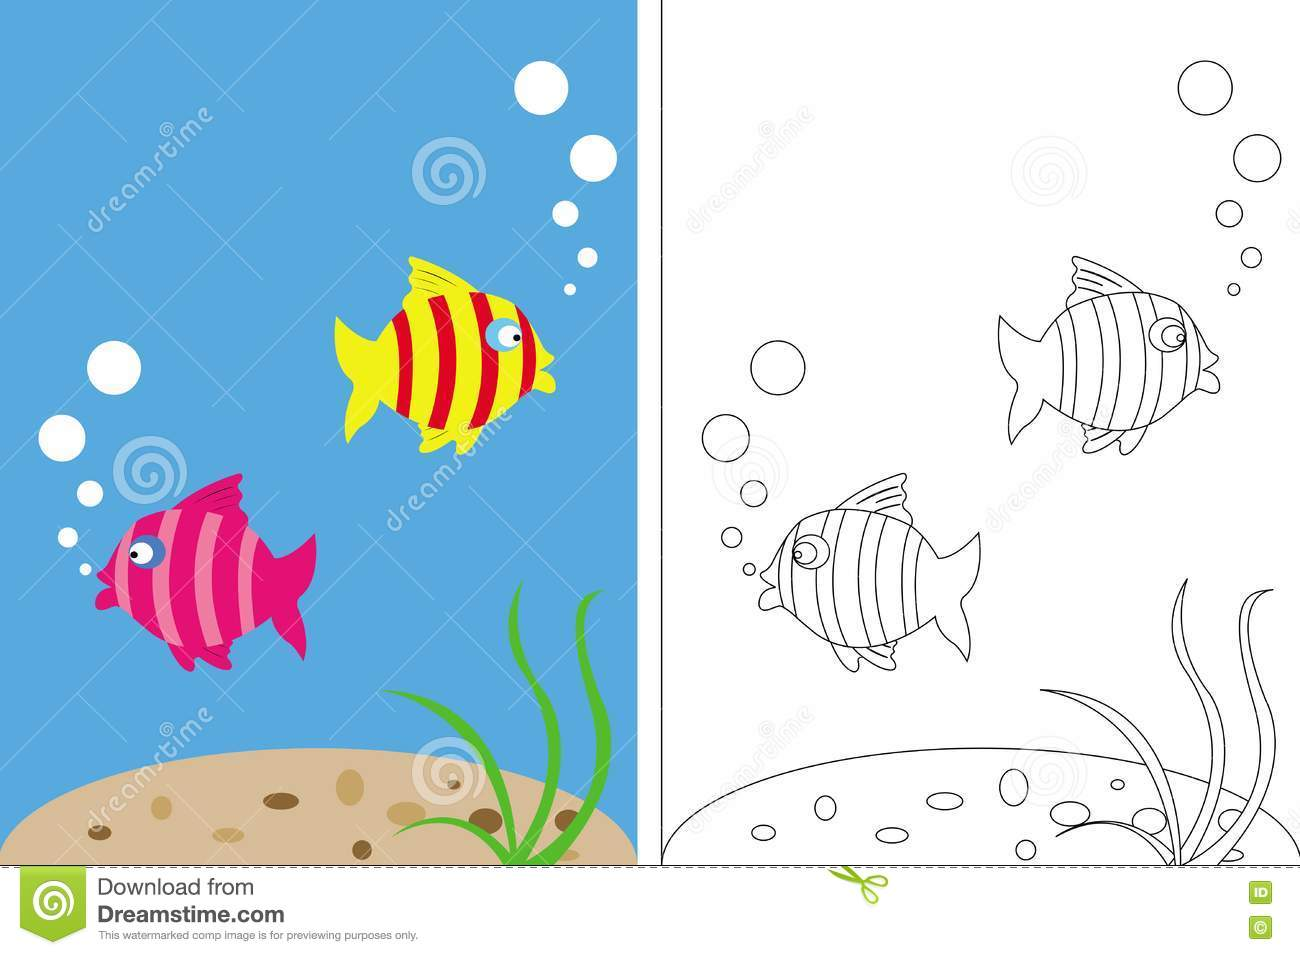 Coloring page book with fish underwater stock vector for Colorful fish book